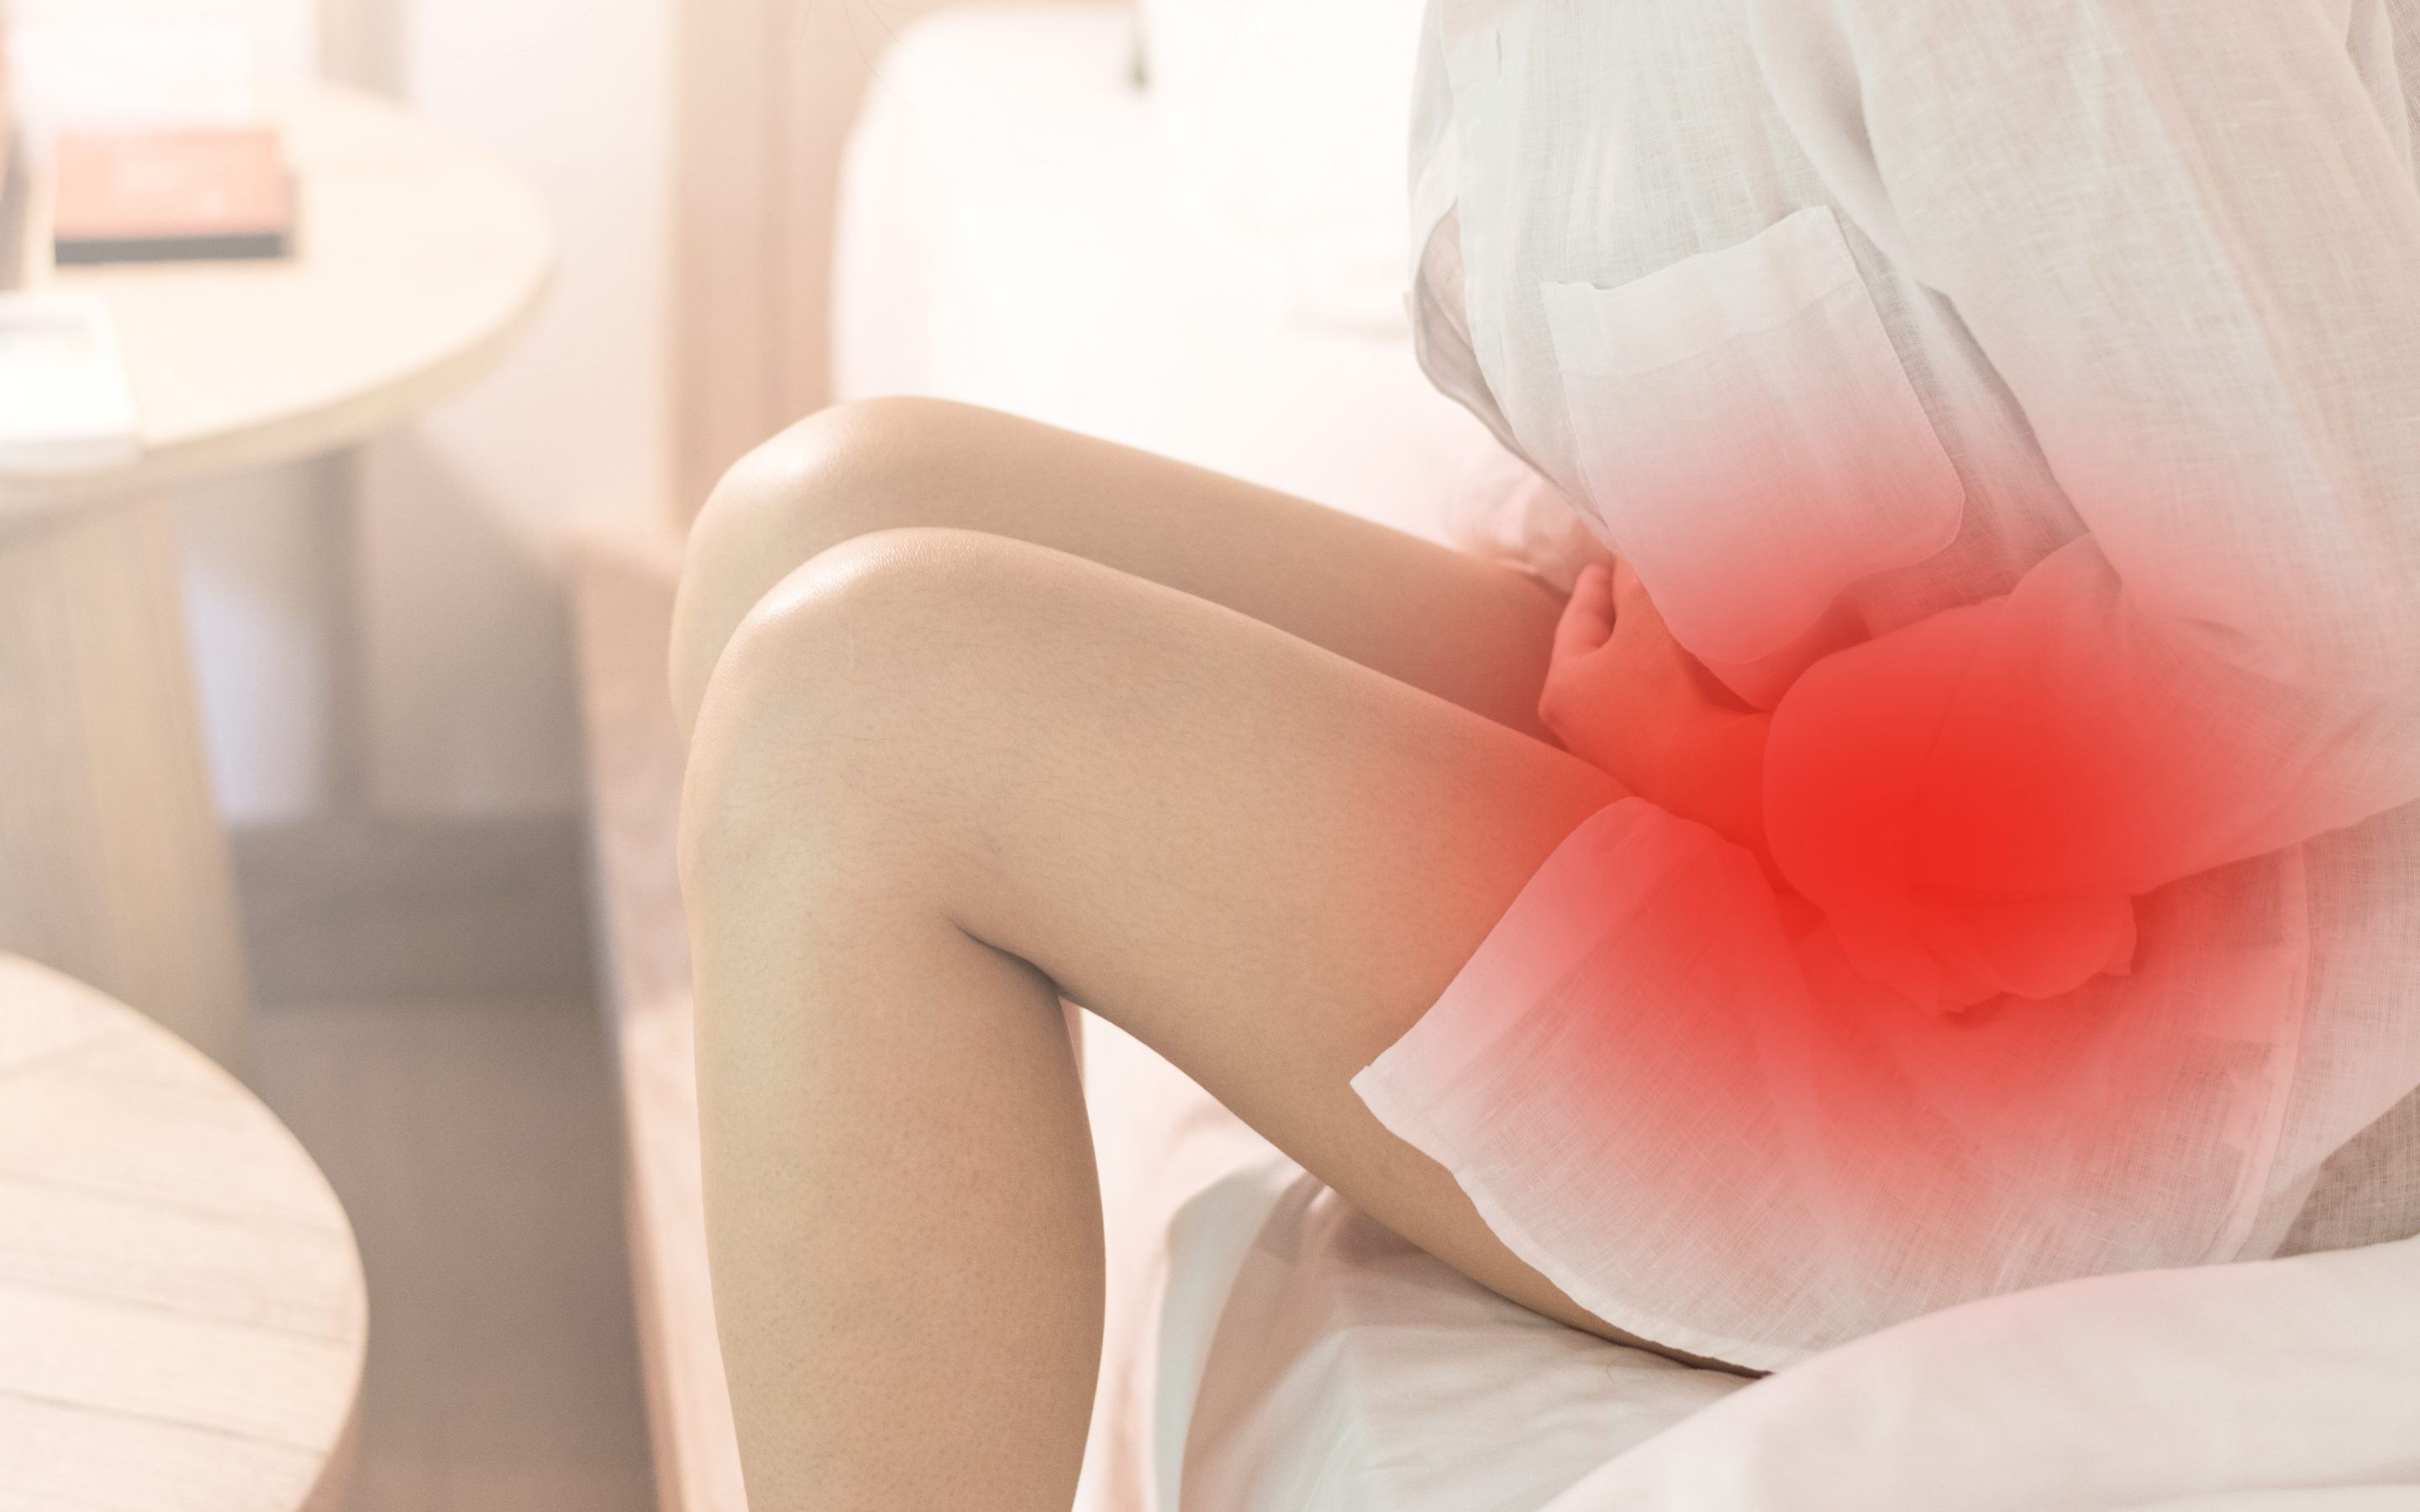 Pelvic Congestion Syndrome - Pelvic Pain and Your Veins